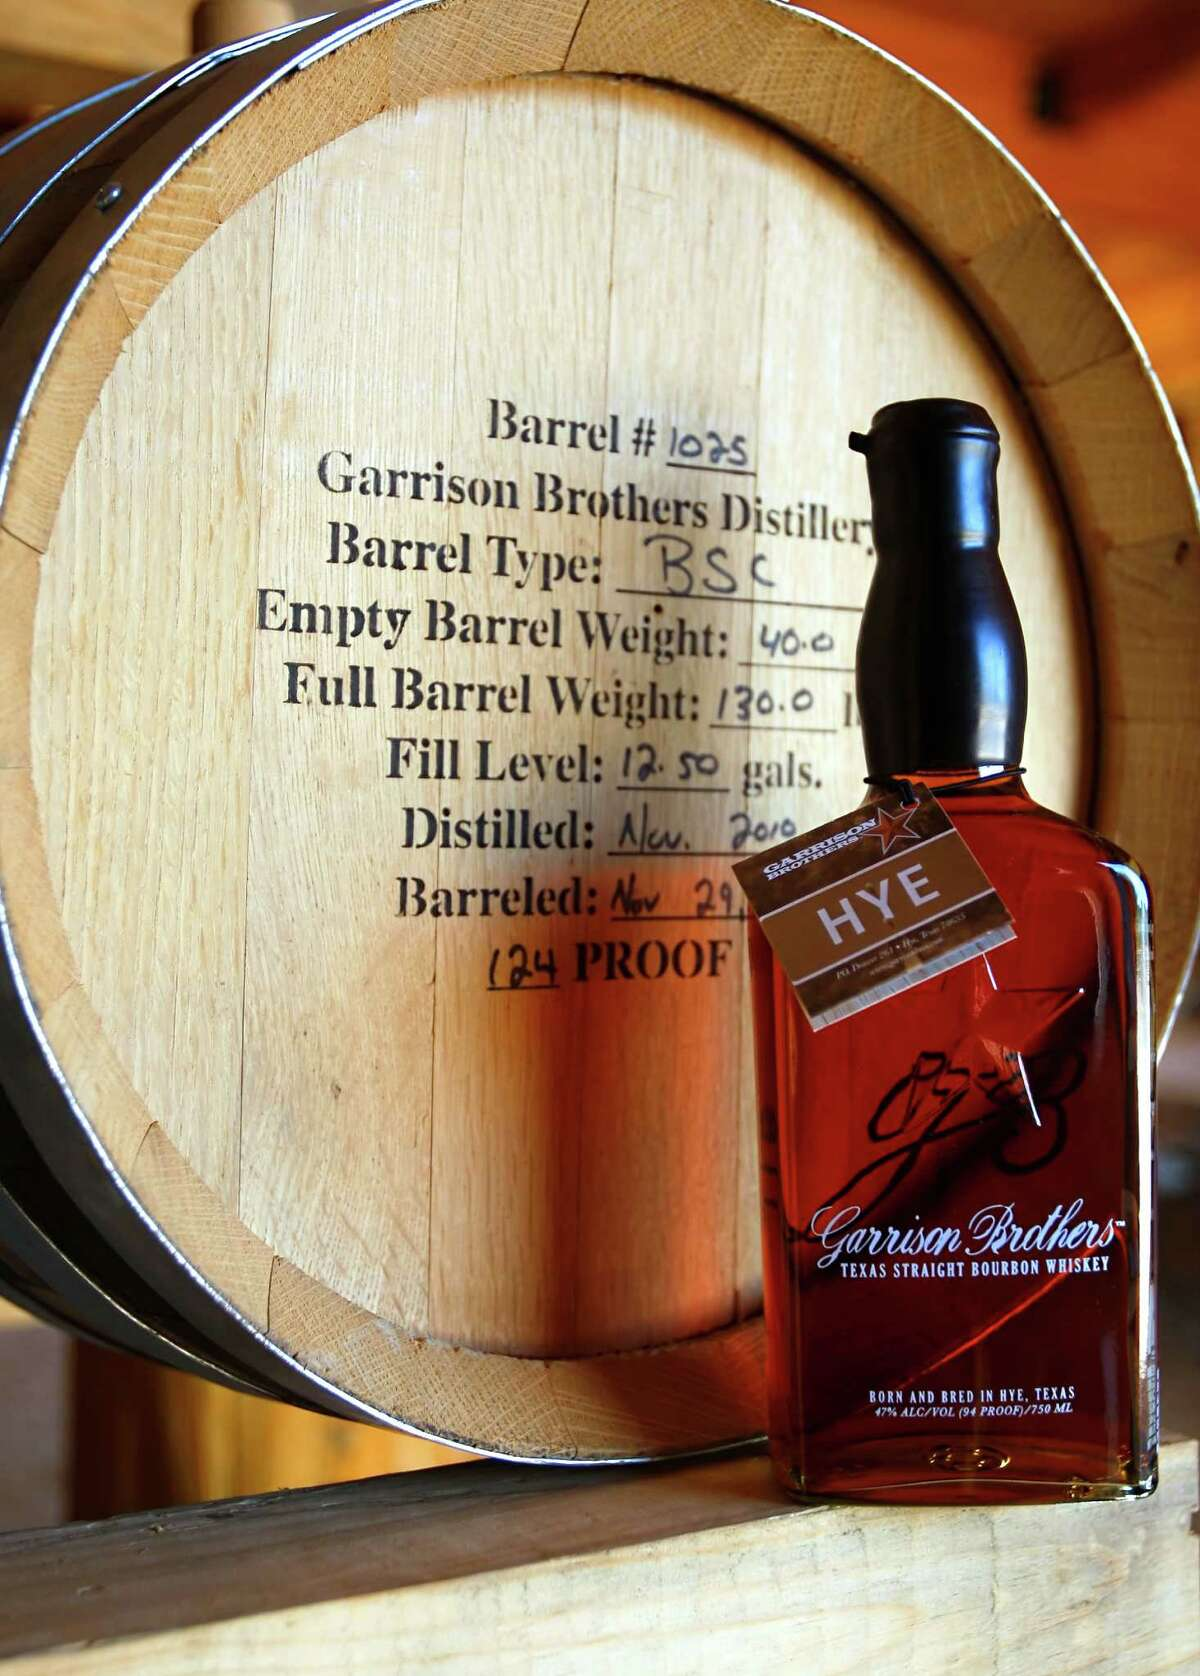 A bottle of Garrison Brothers bourbon at the Hye distillery.